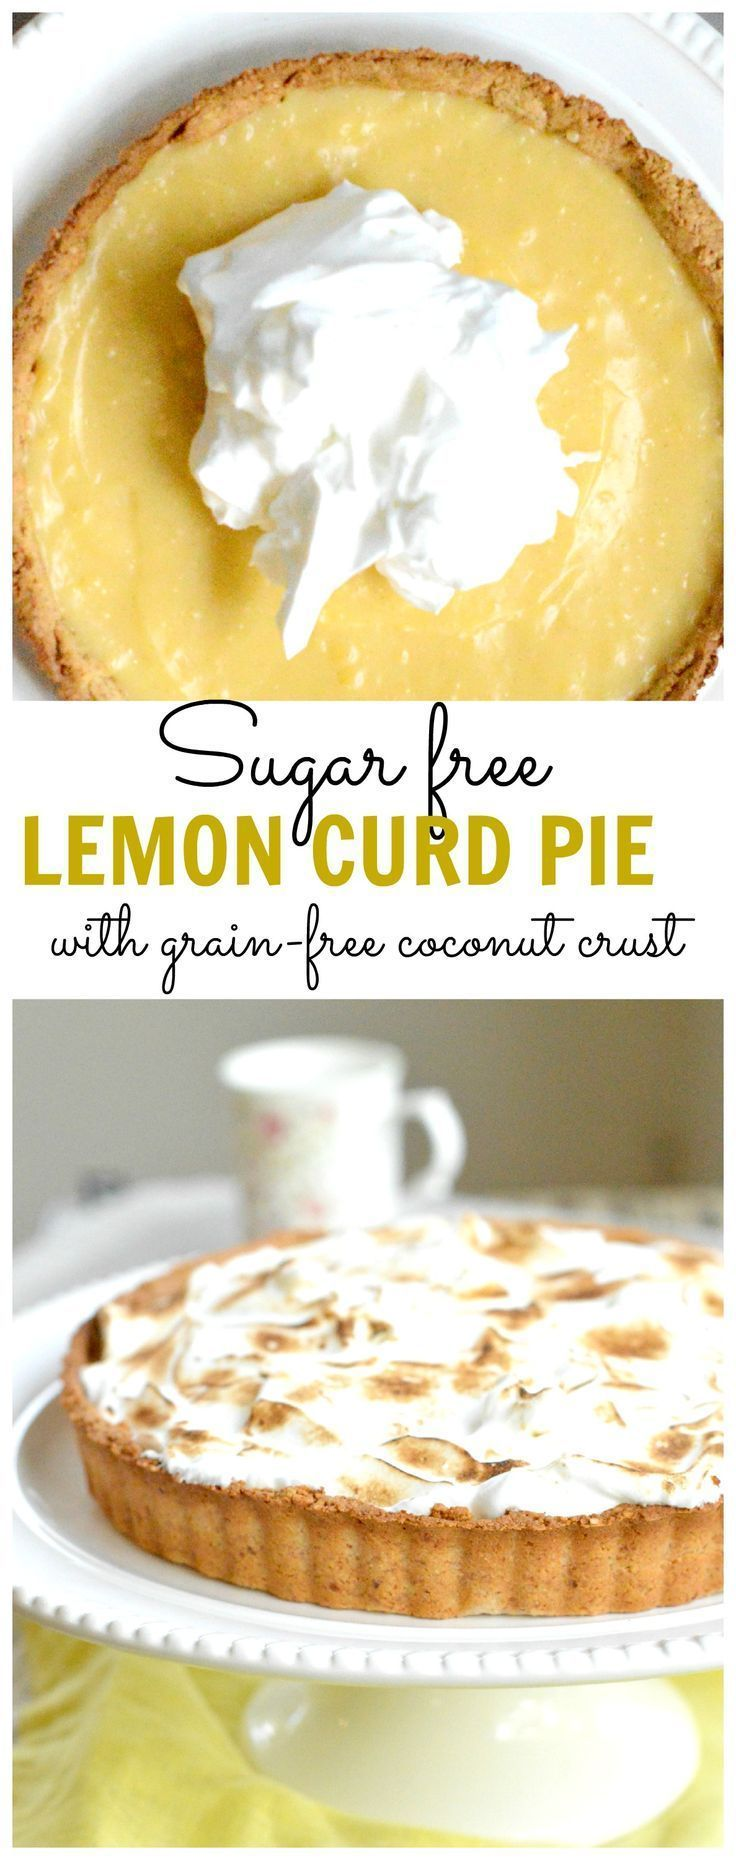 Diabetic dessert dream!!! A Sugar free lemon curd pie with sugar free meringue and grain free coconut crust.